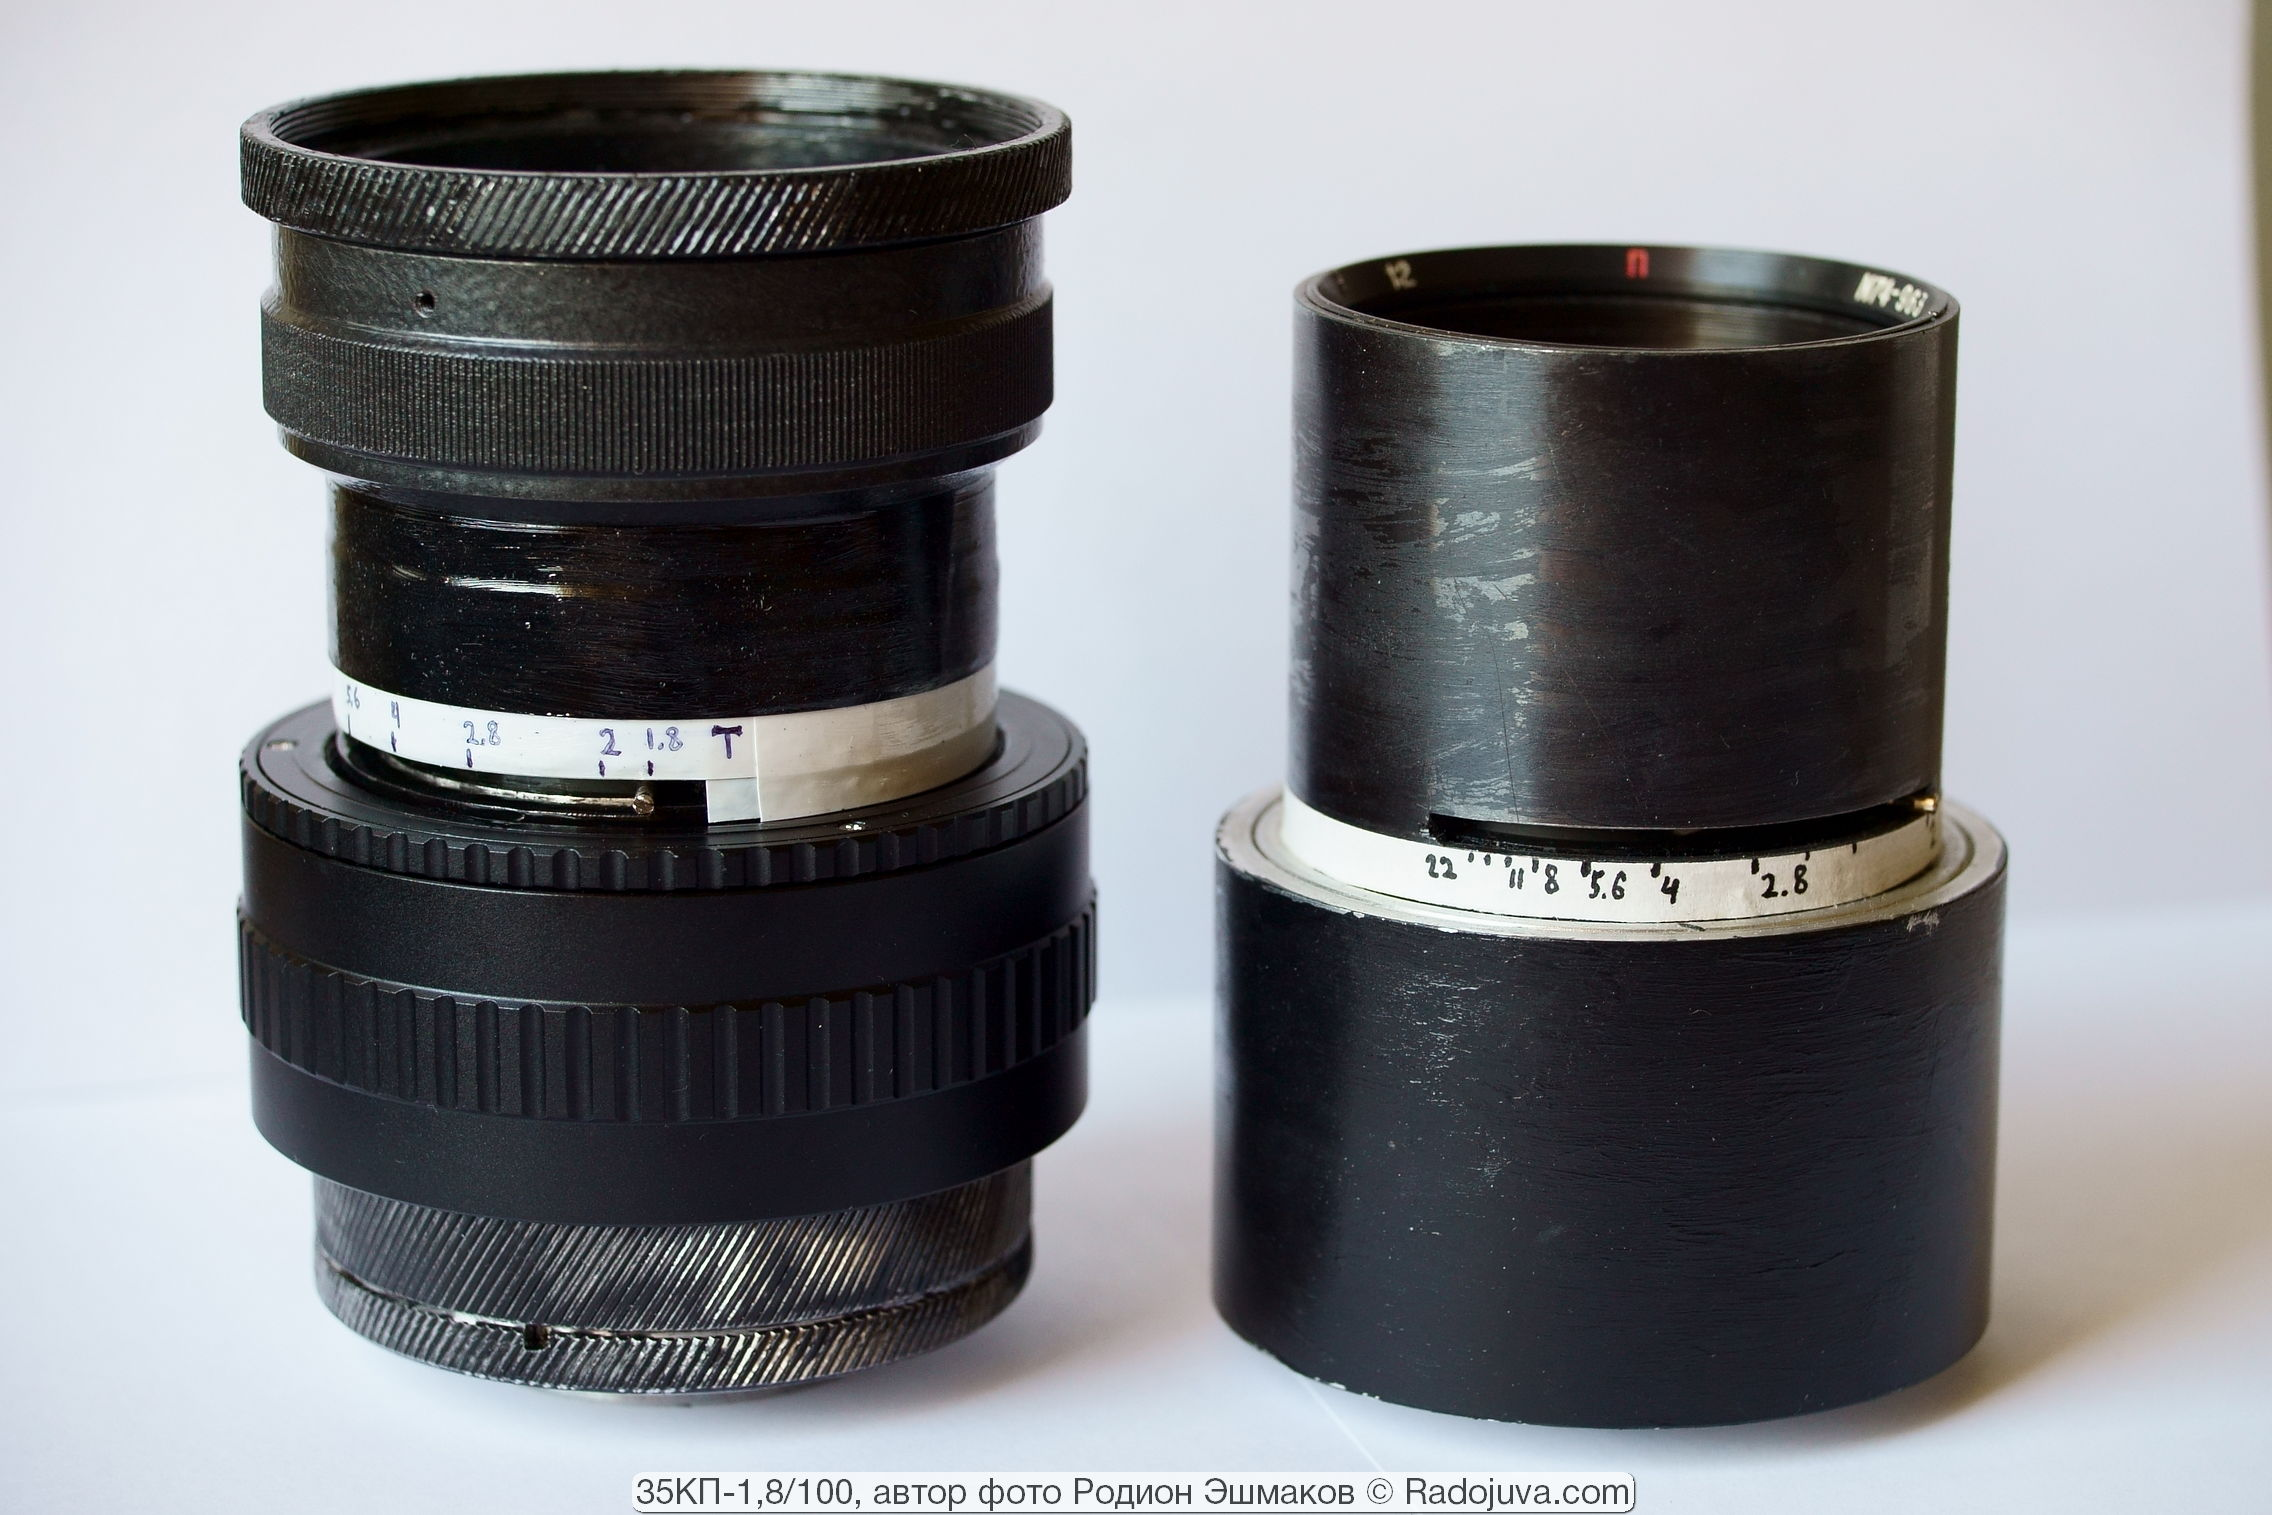 35KP 100 / 1.7 in a two-aperture version is heavier and larger than the PO500-1 oil refinery in a steel case.